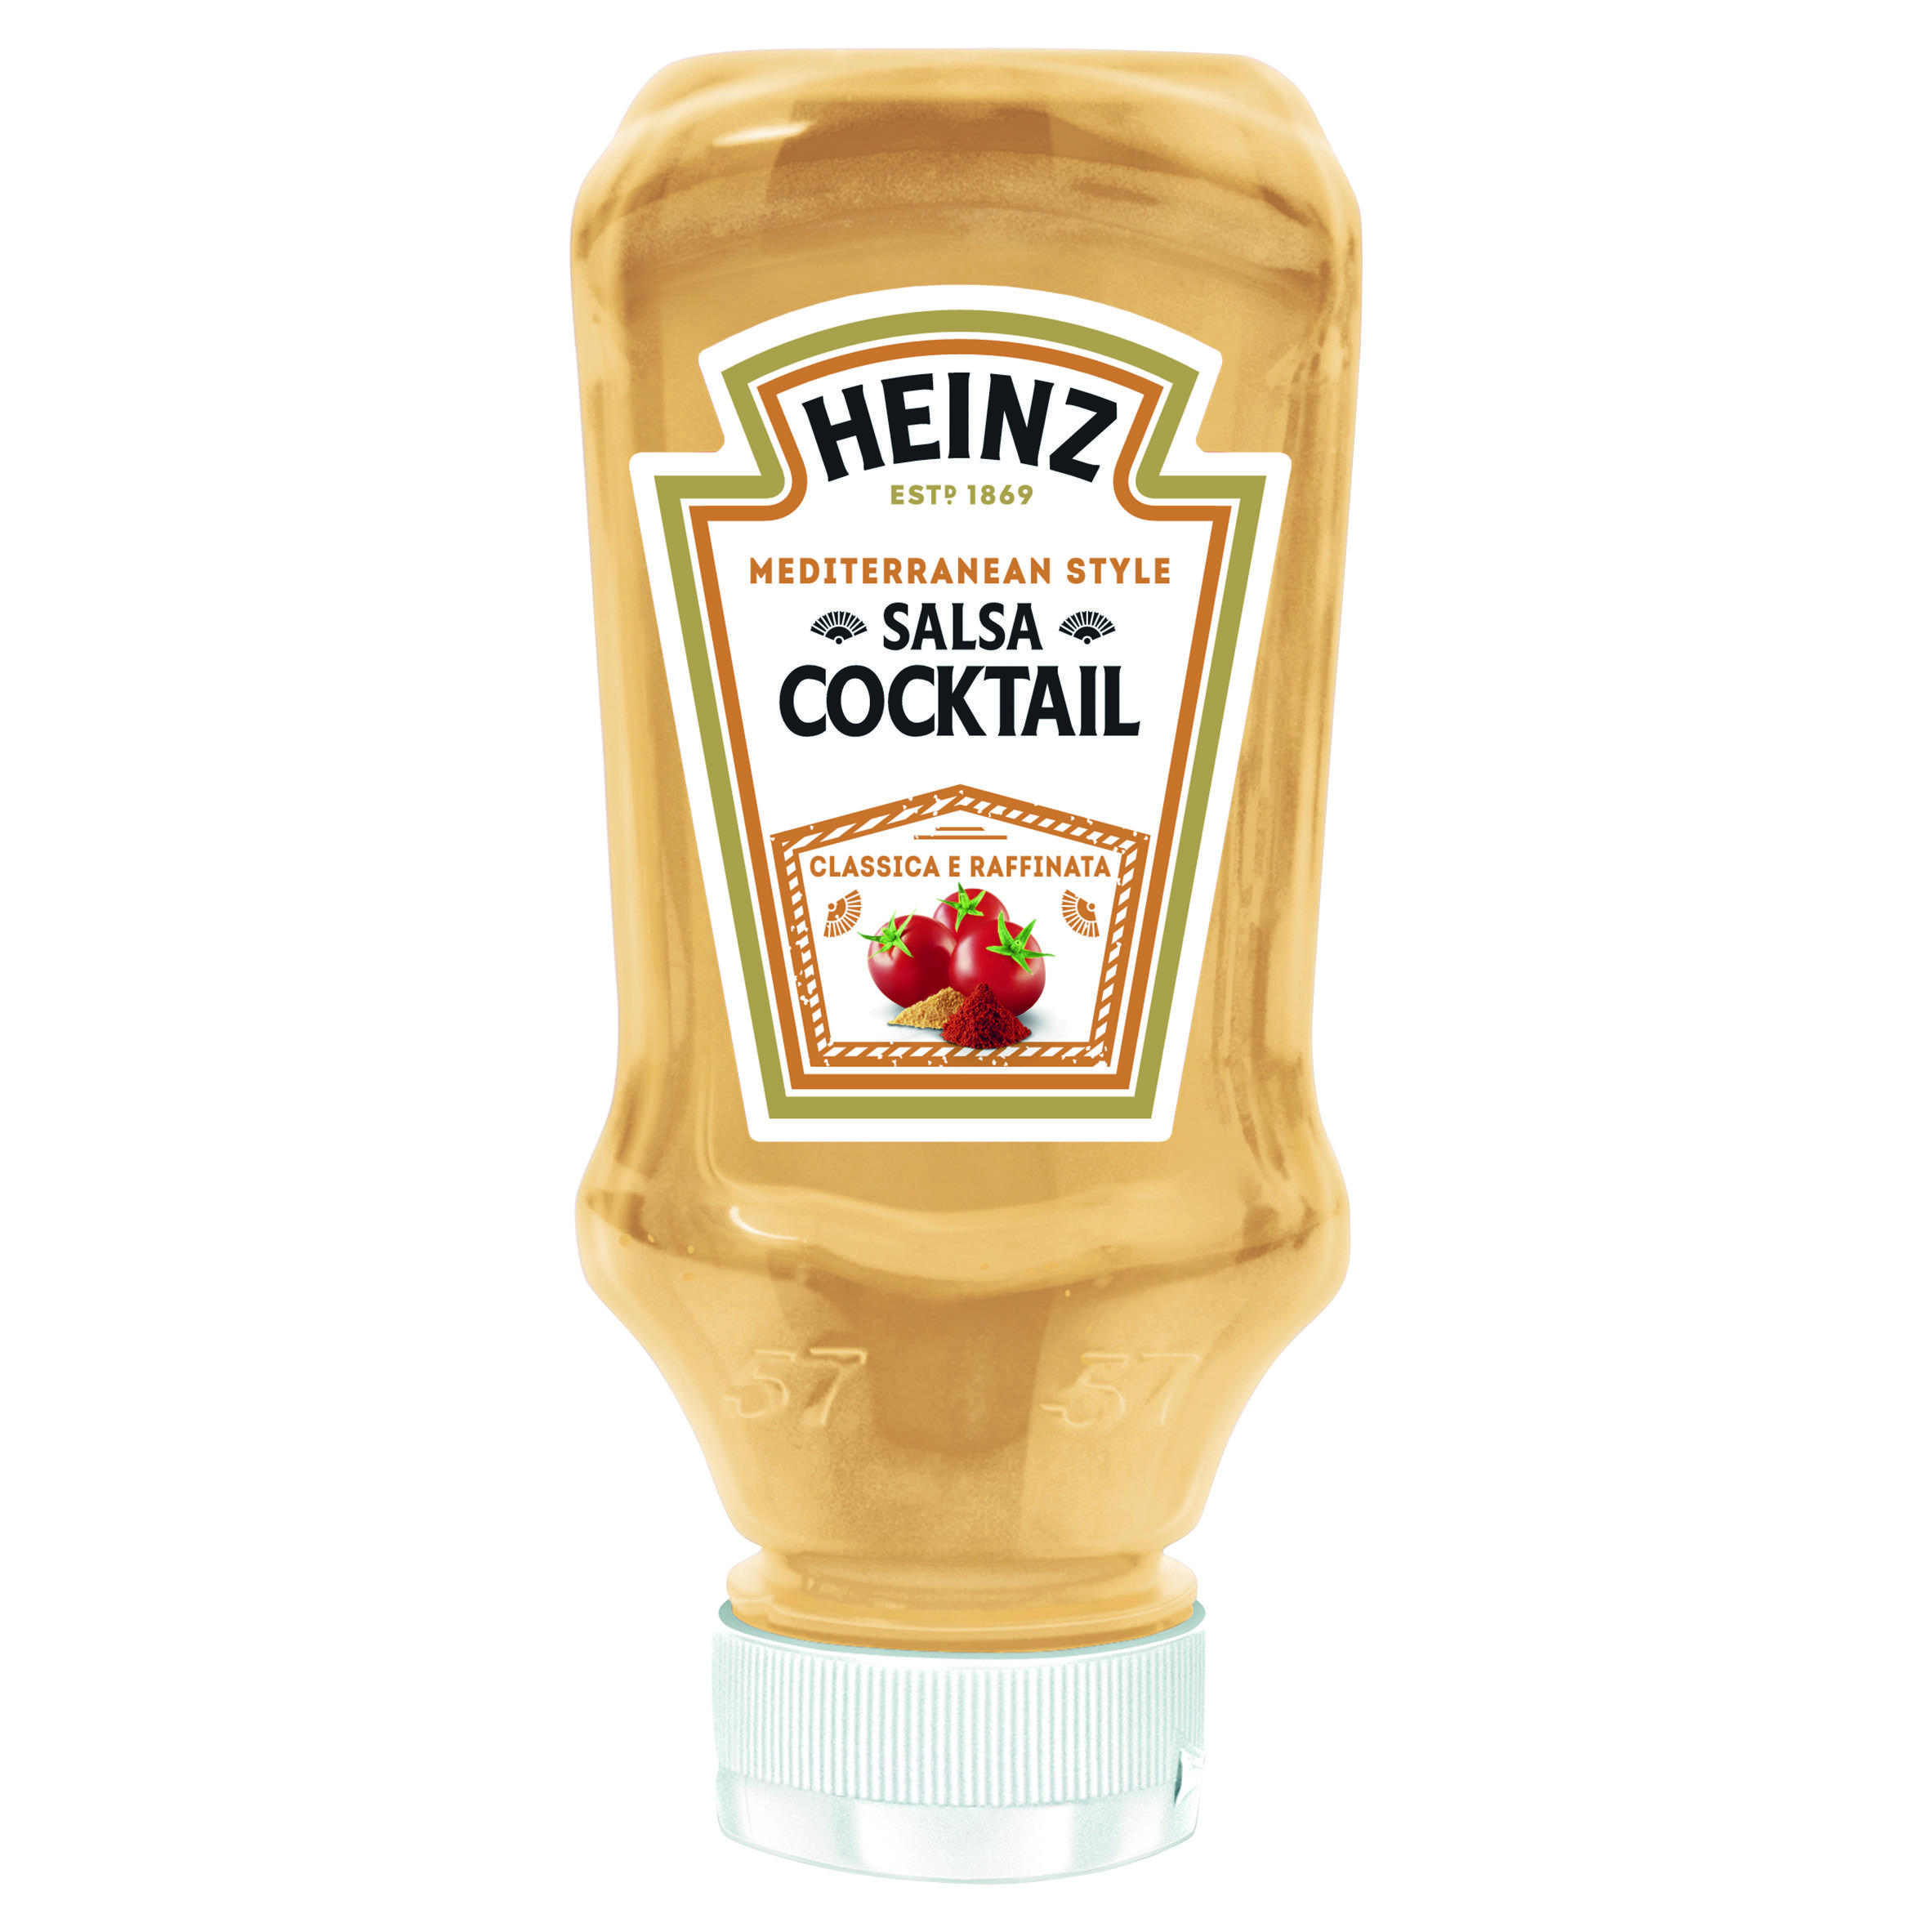 Heinz Salsa Cocktail 225g Top Down image